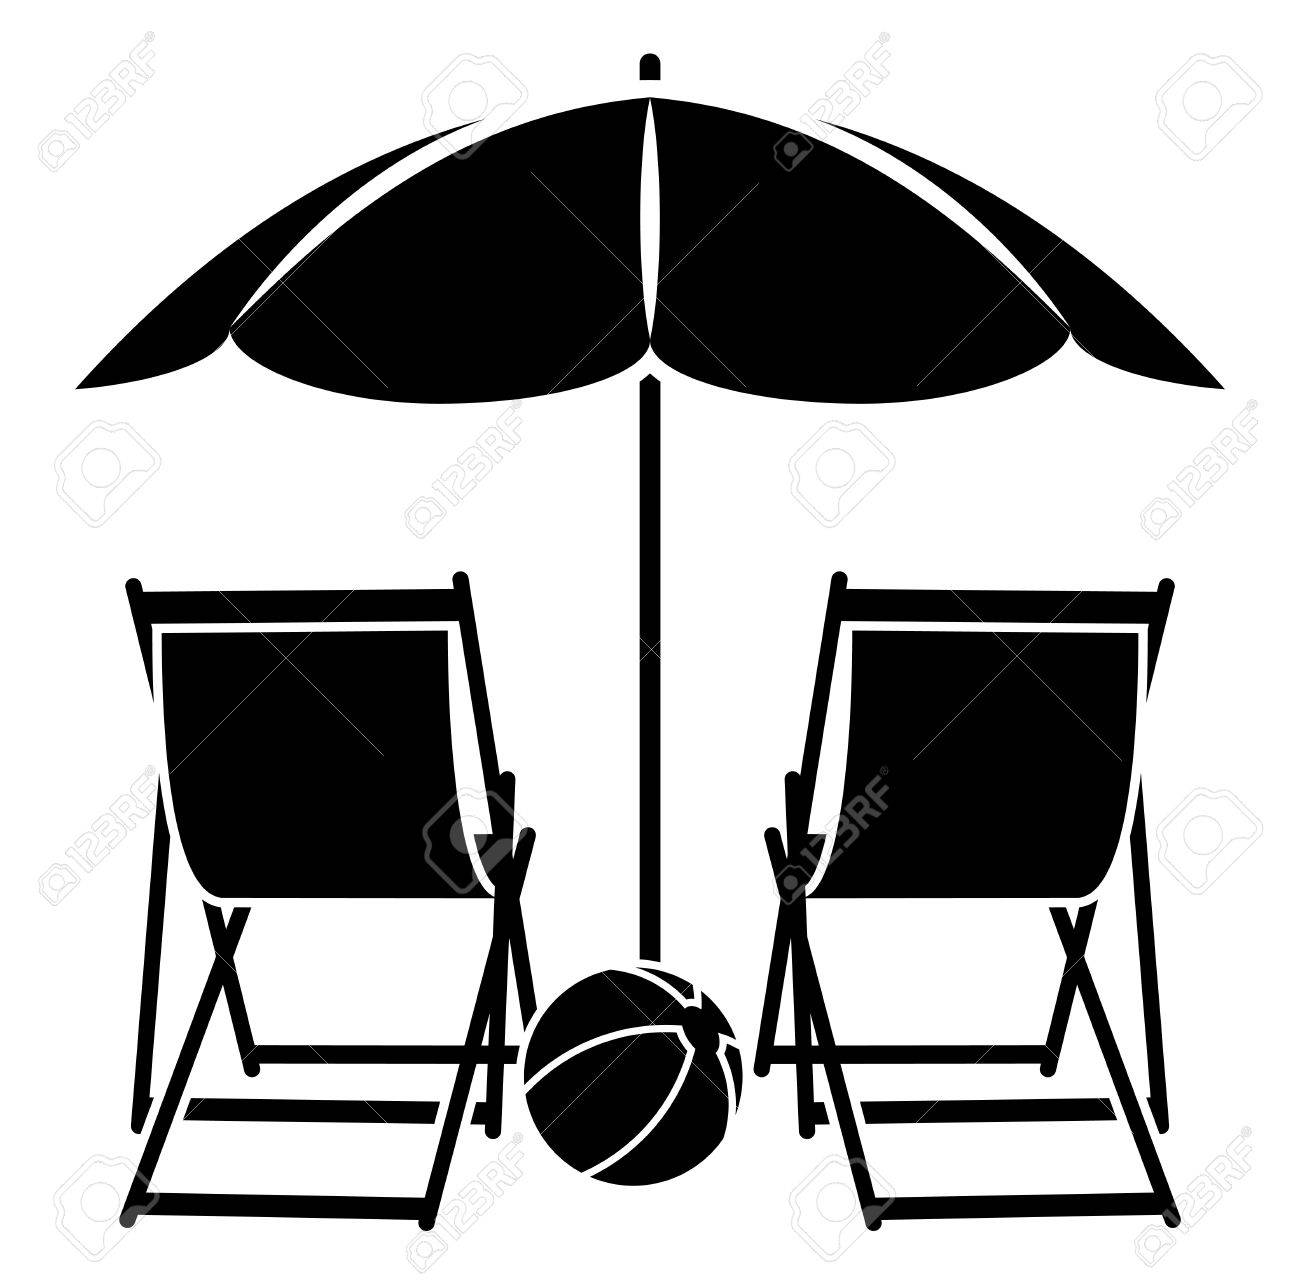 Vector vector deck chairs under beach umbrella isolated on white background